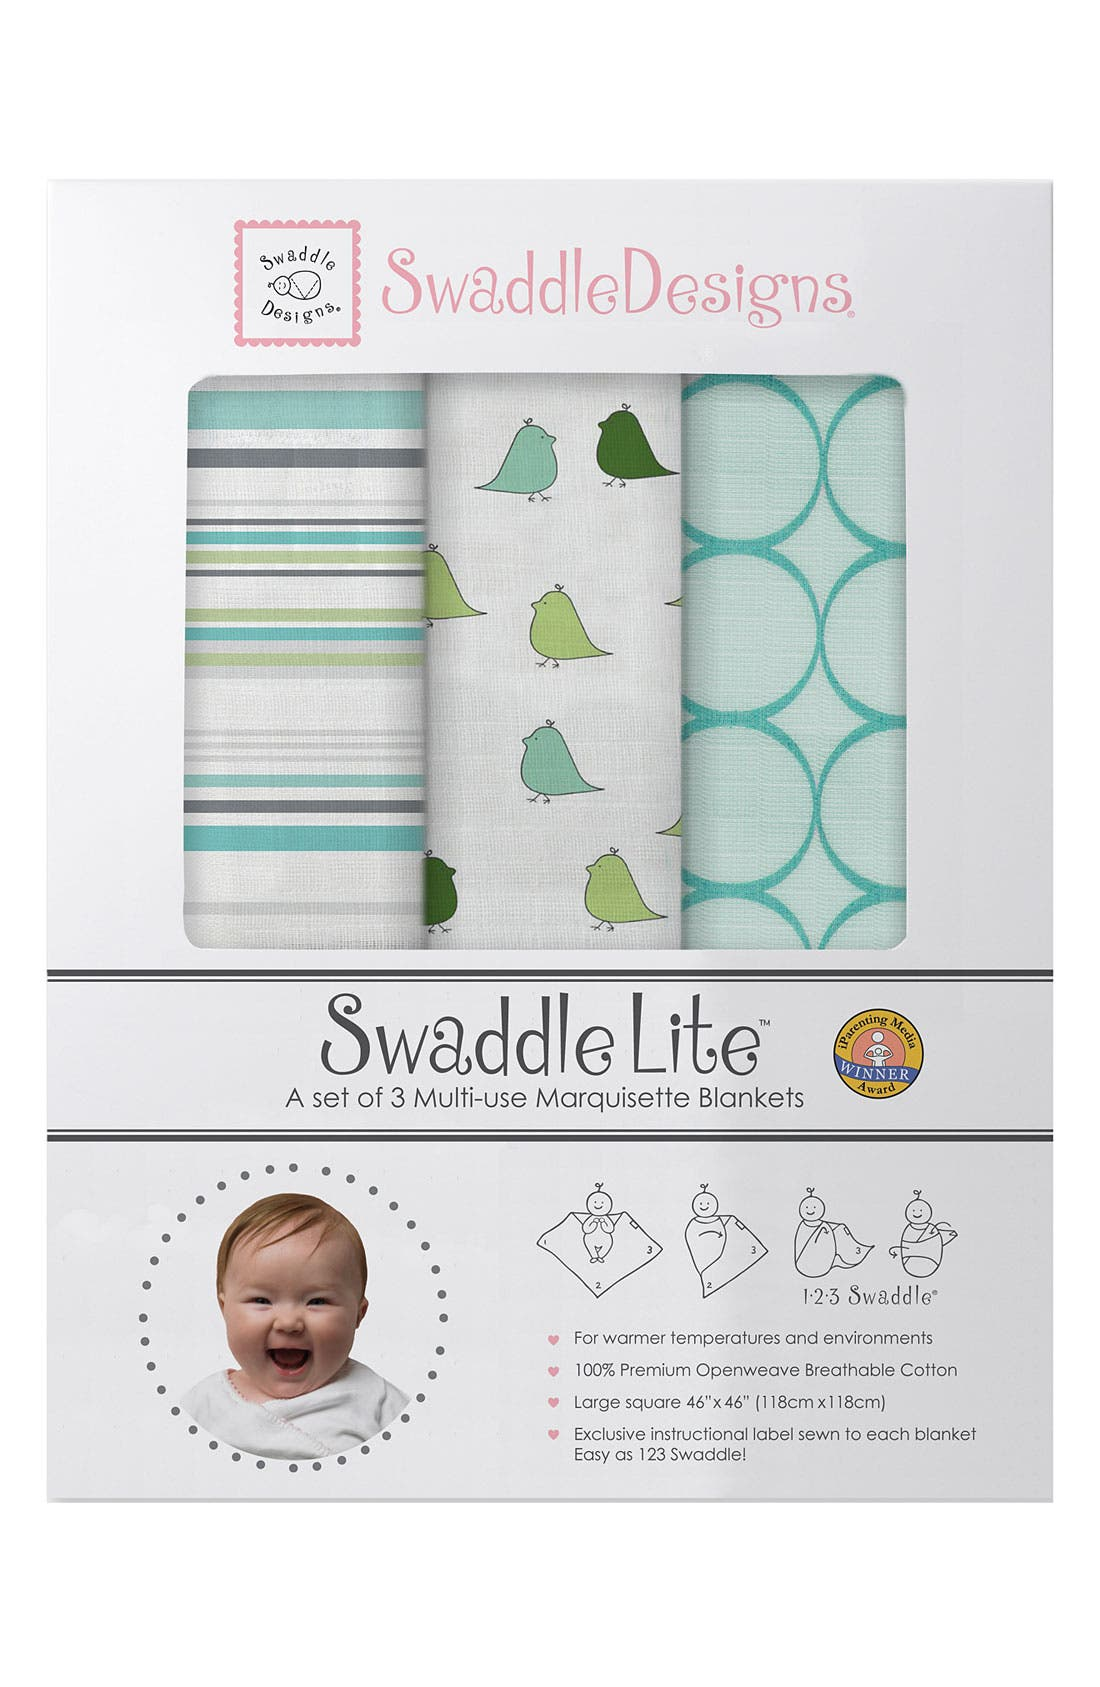 Main Image - Swaddle Designs 'Swaddle Lite' Marquisette Blanket (Set of 3)